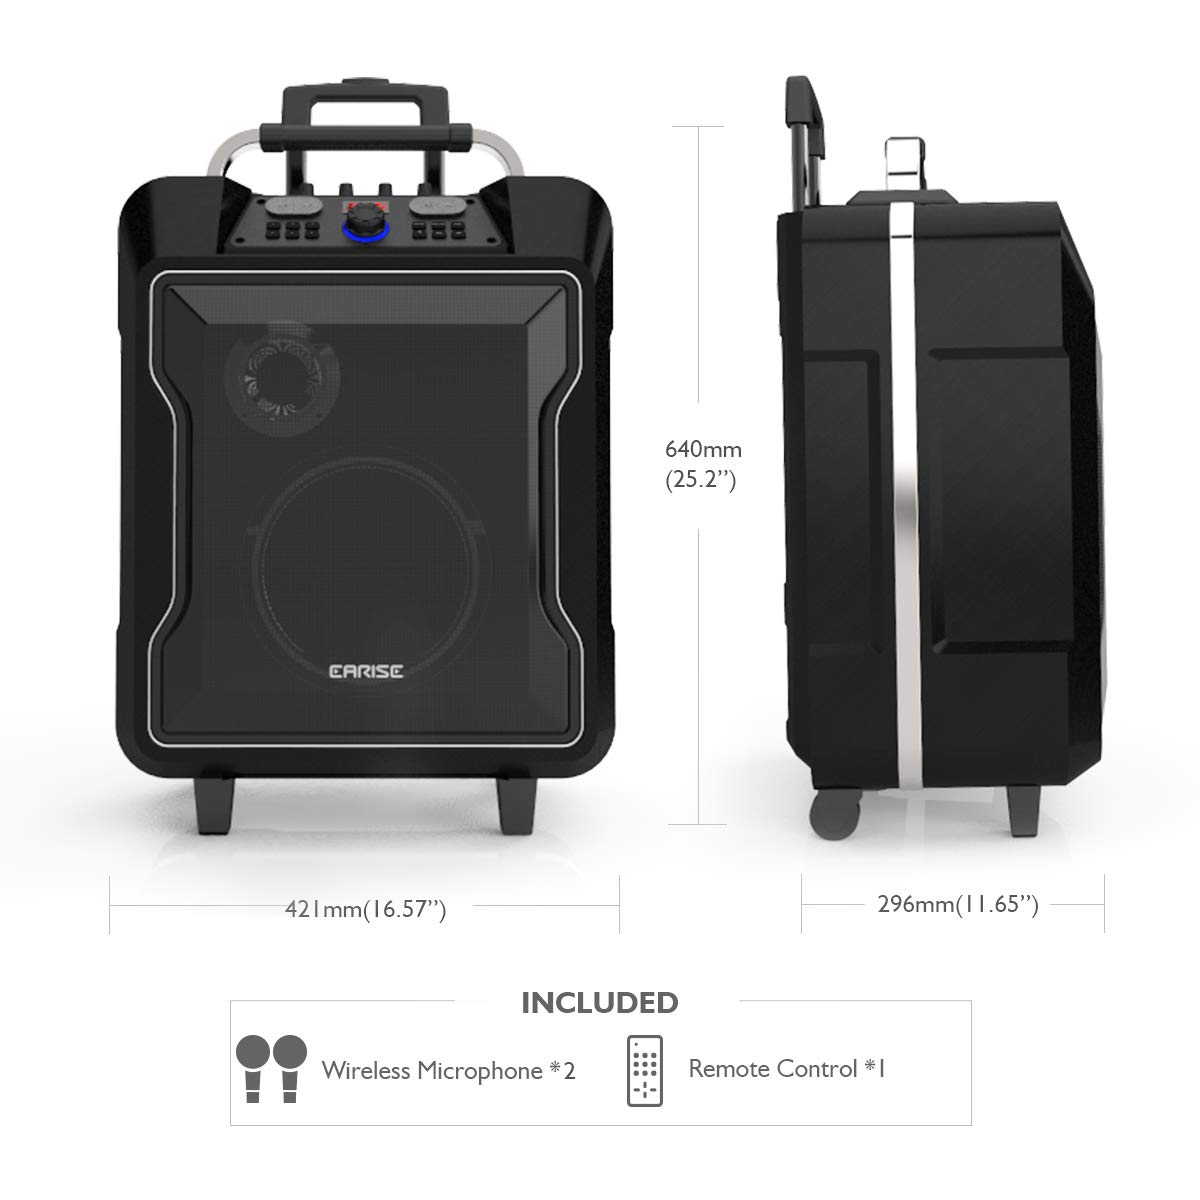 EARISE M60 Audio Portable PA System Bluetooth Loudspeaker with 2 Wireless Microphone,10'' Subwoofer, Remote Control, Aux Input, Soft Metal, LED Display, Telescoping Handle, USB Charging & Wheels, Black by Earise (Image #3)